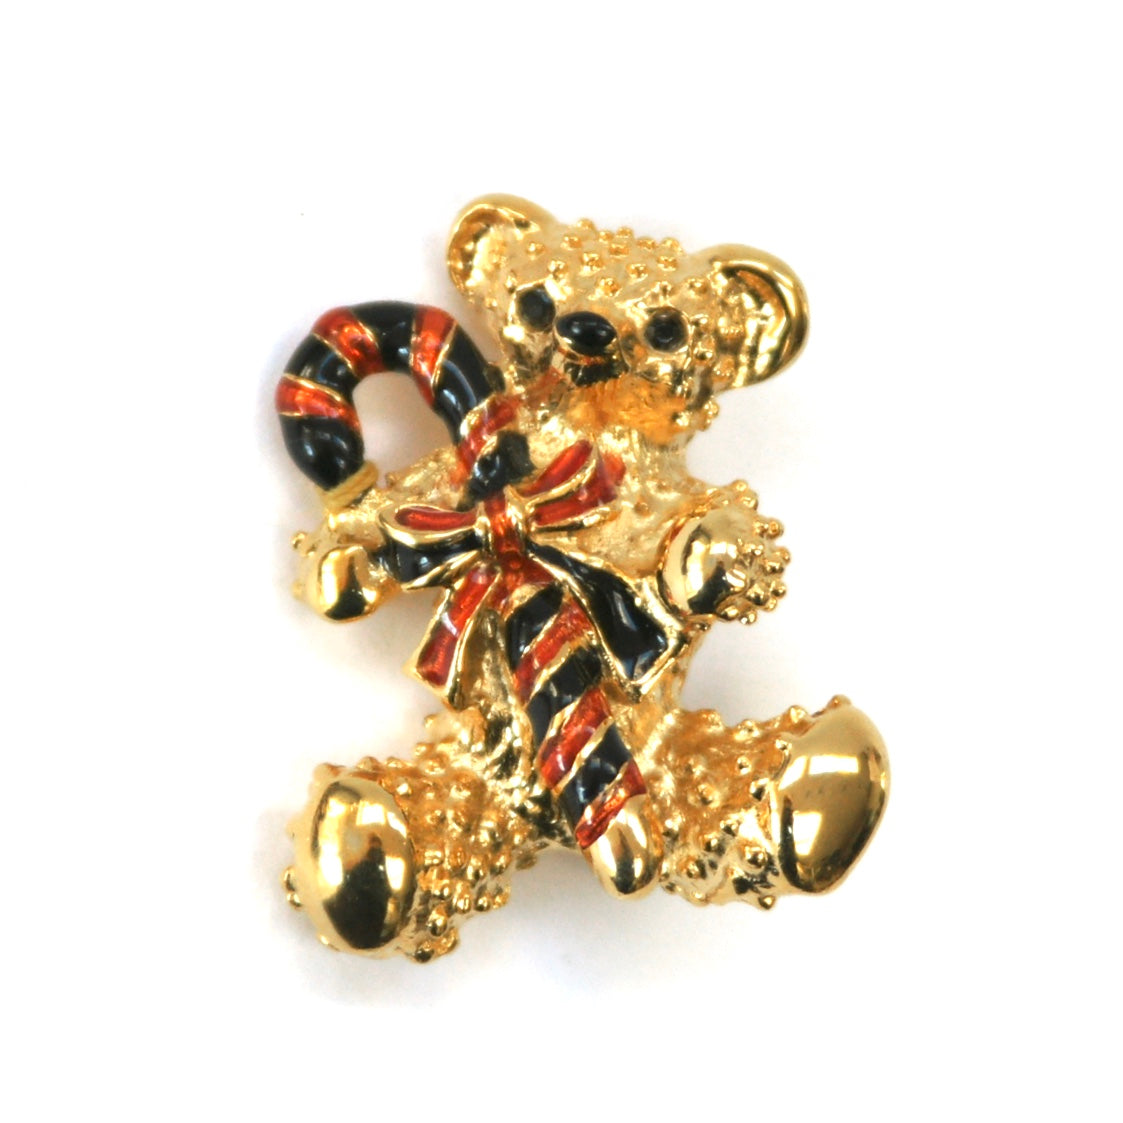 Eclectica Vintage Jewellery | UK | 1980s Vintage Christmas Teddy Bear Brooch